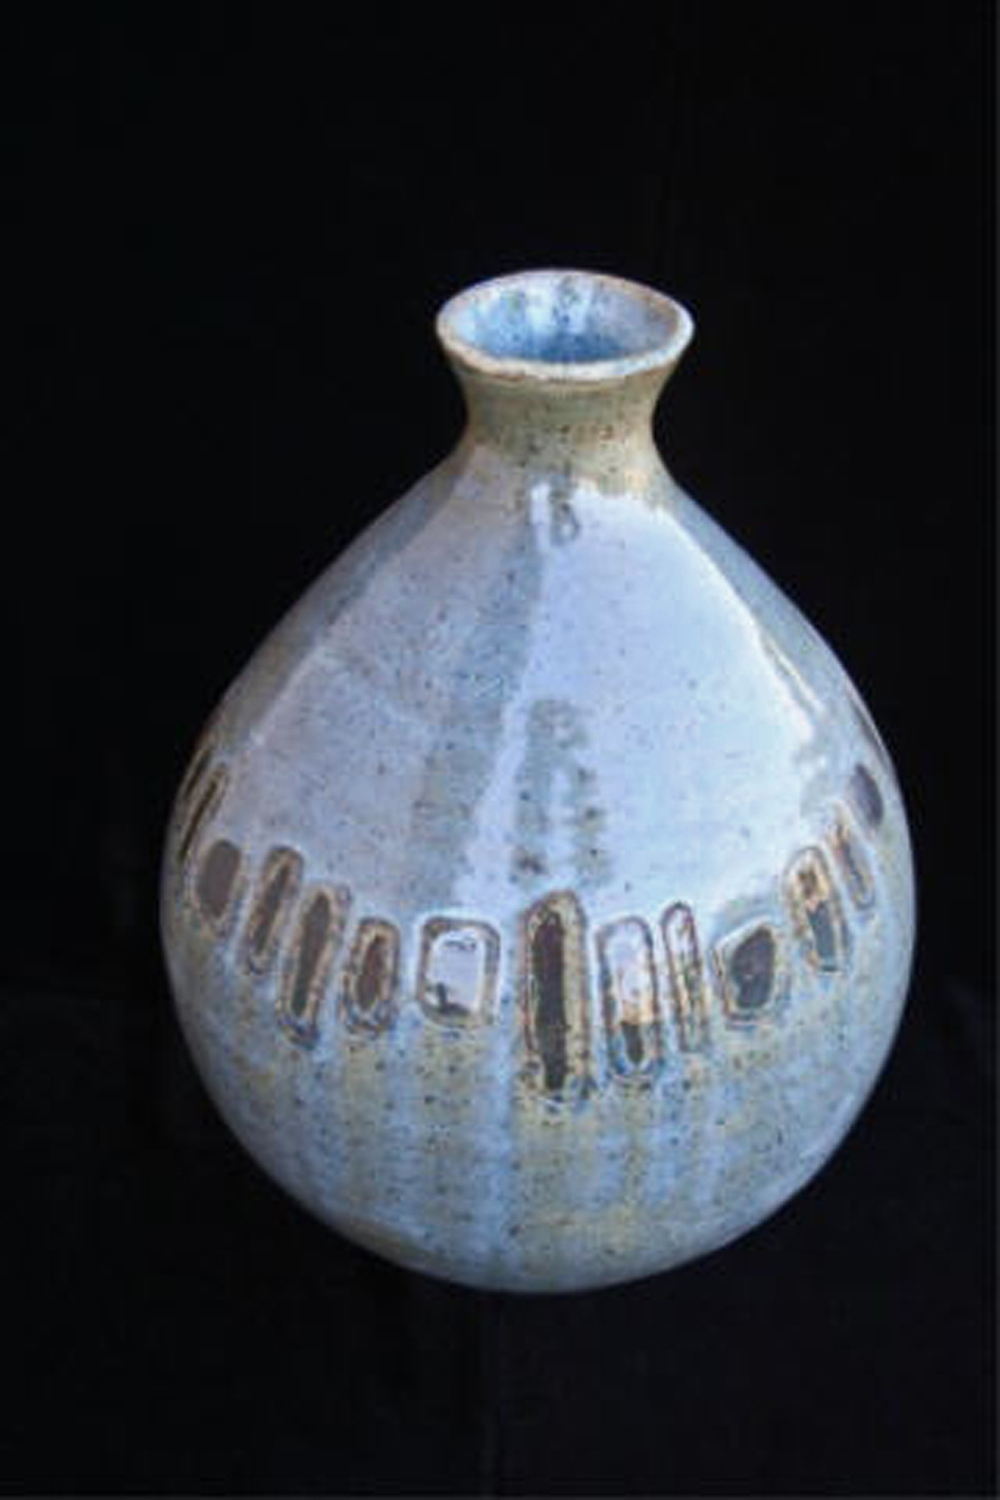 "Bridge  , 2003, wheel-thrown and carved stoneware Fired at cone 6 oxidation, 9 3/4"" h x 6 1/2"" dia"